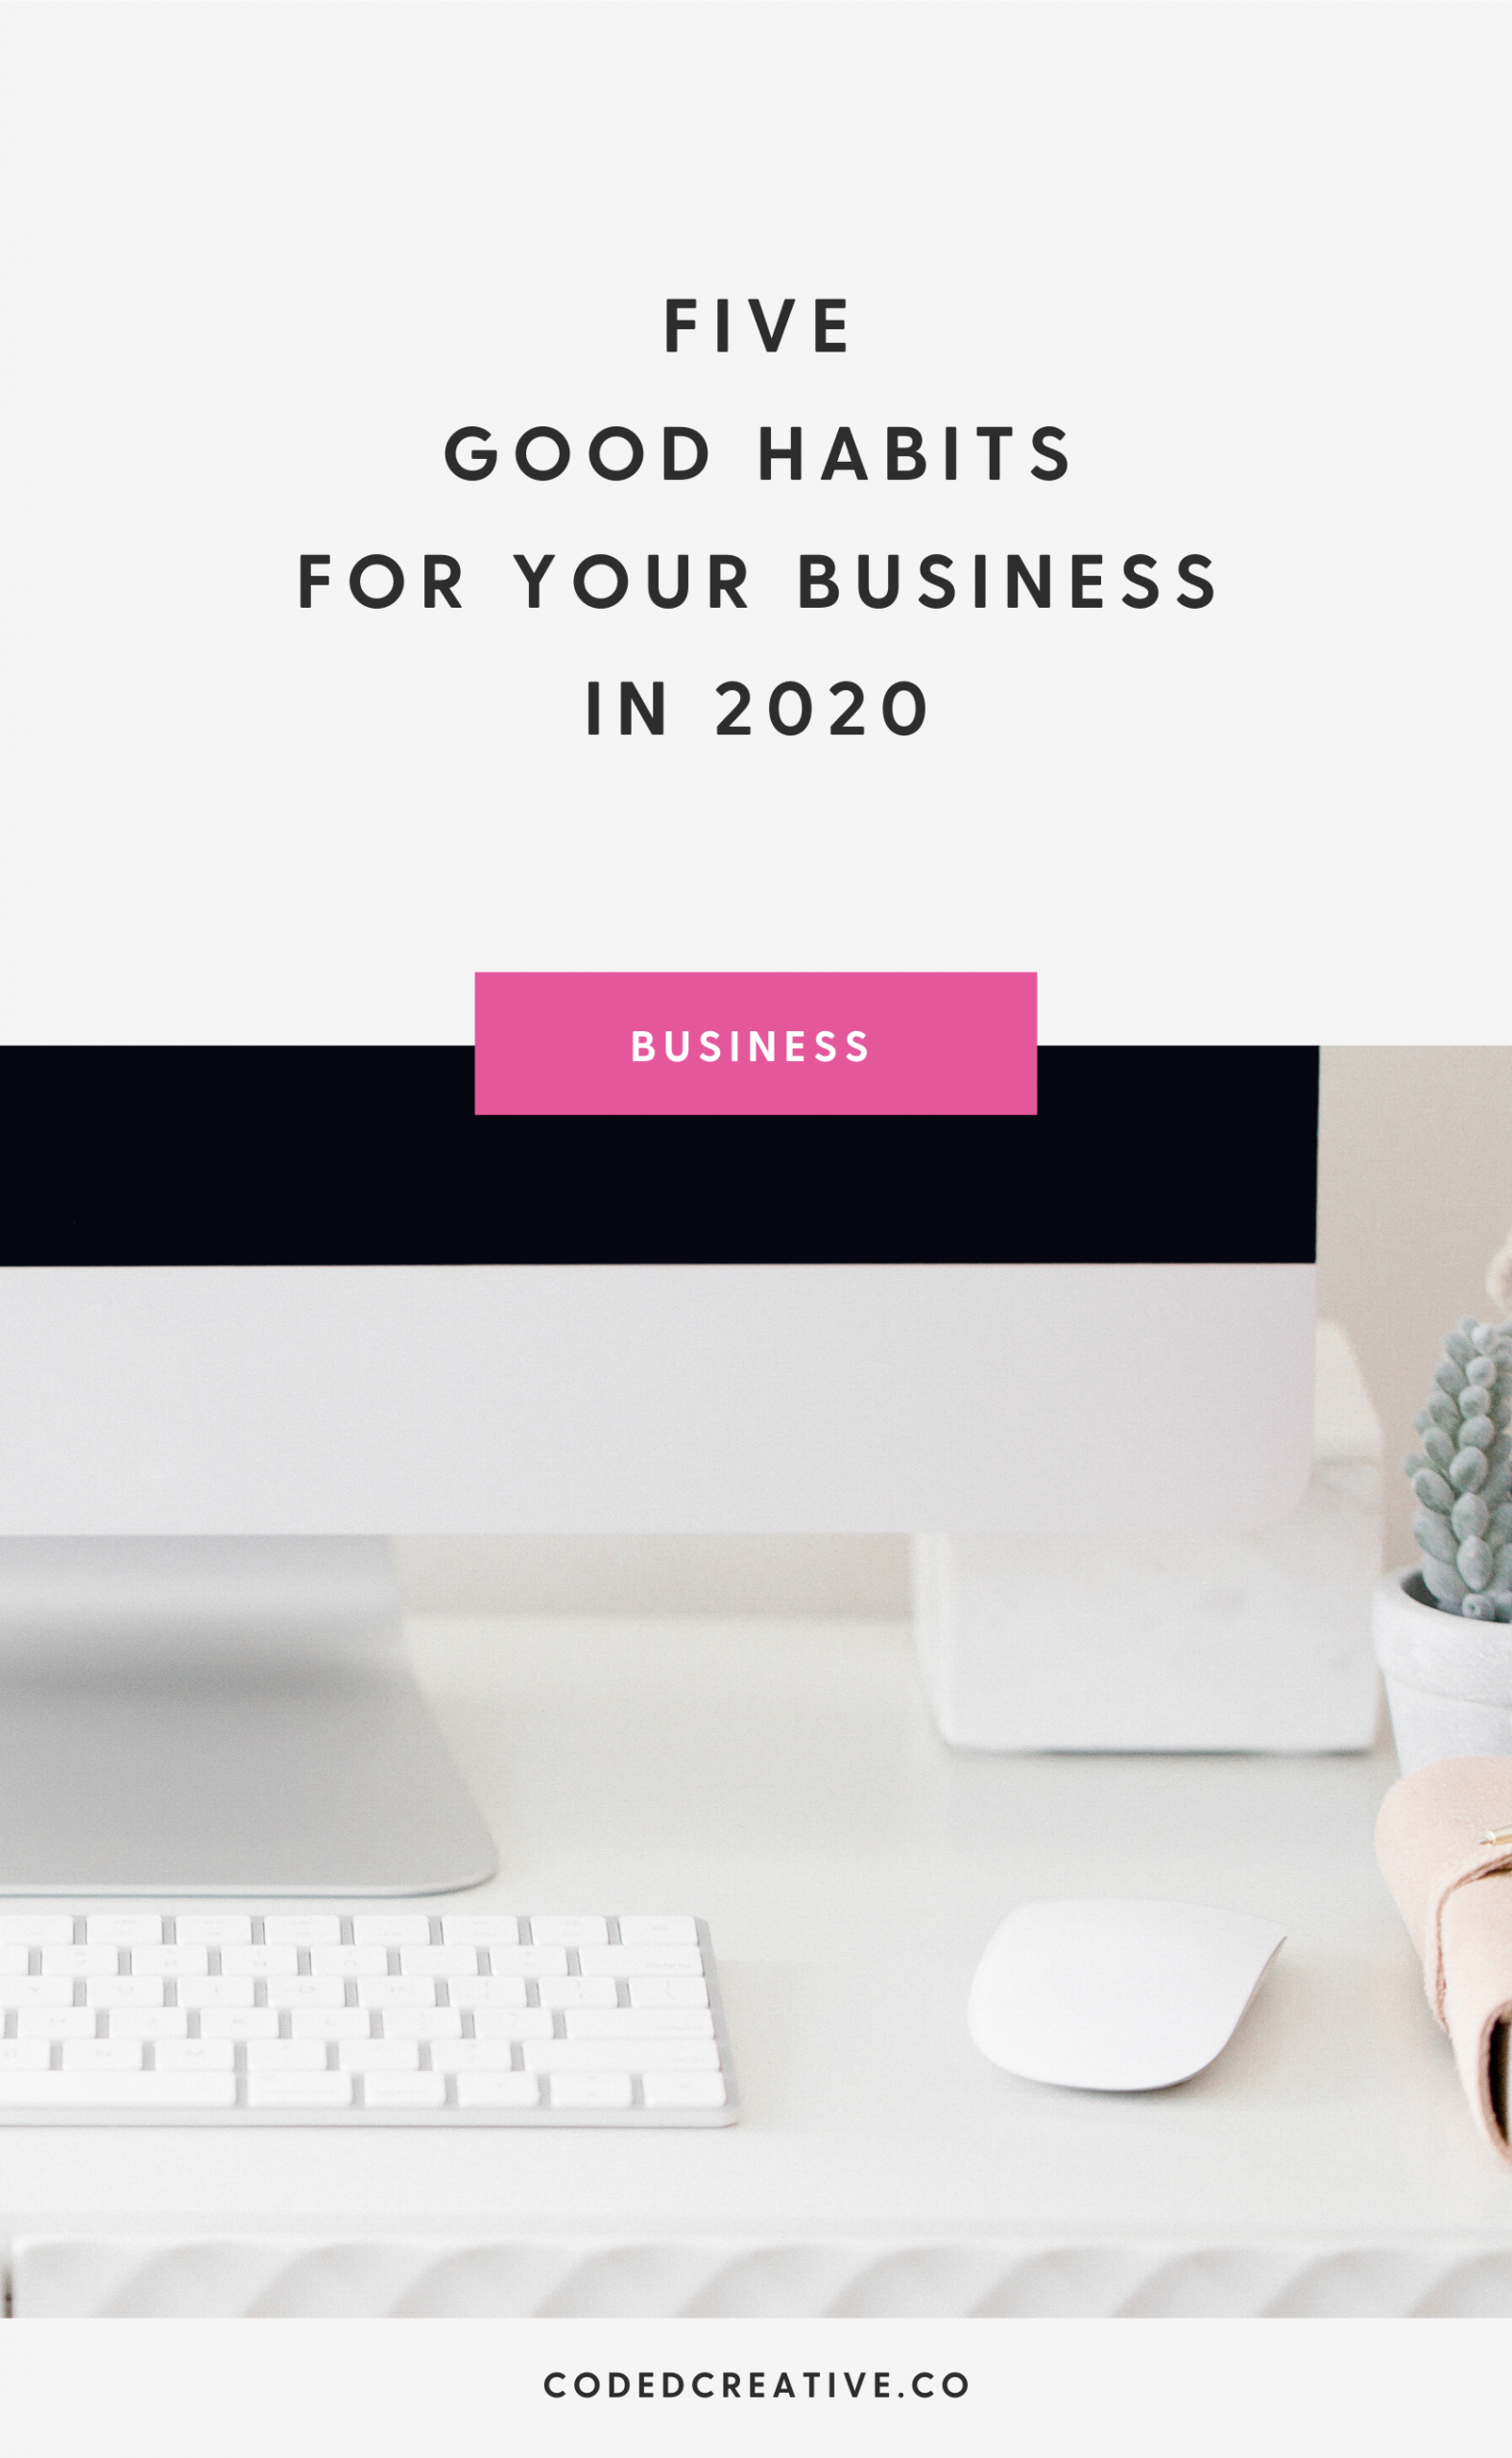 I'm sharing with you 5 habits that you can start working on in your business to not only feel good about the work you're doing but also grow your business so you can hit your goals.